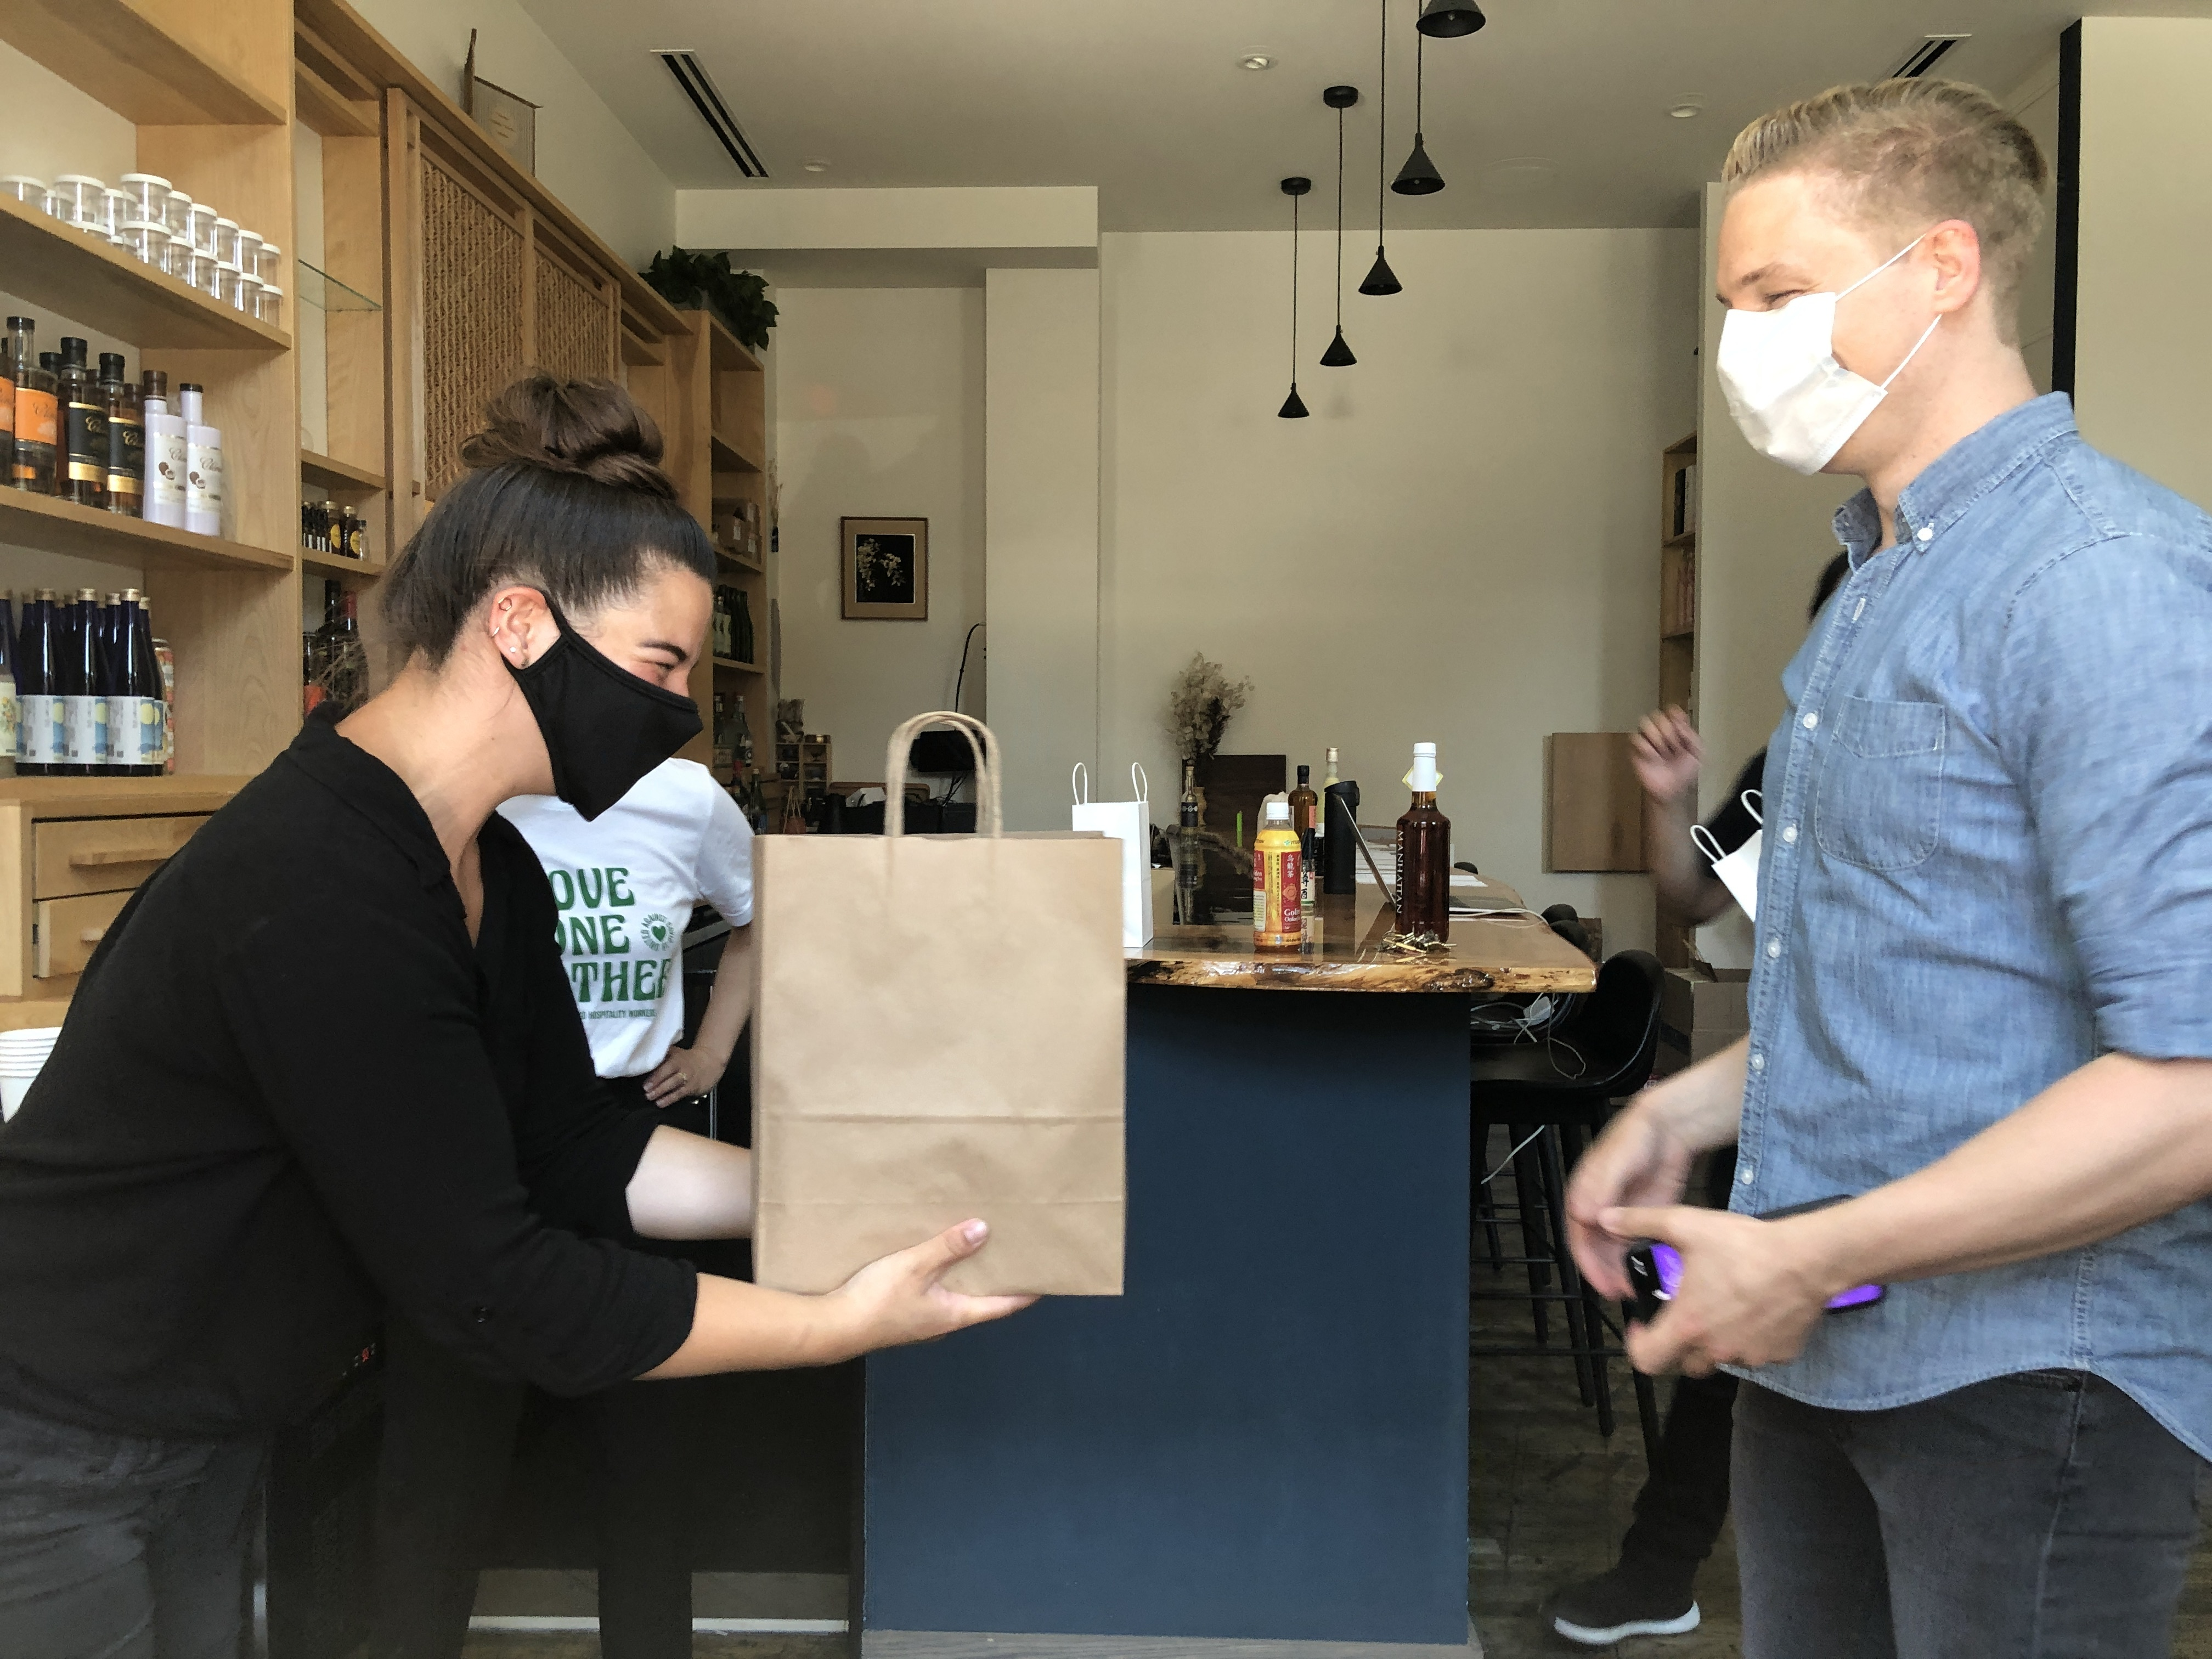 A person wearing black hands another person wearing a button down shirt a brown bag with handle.